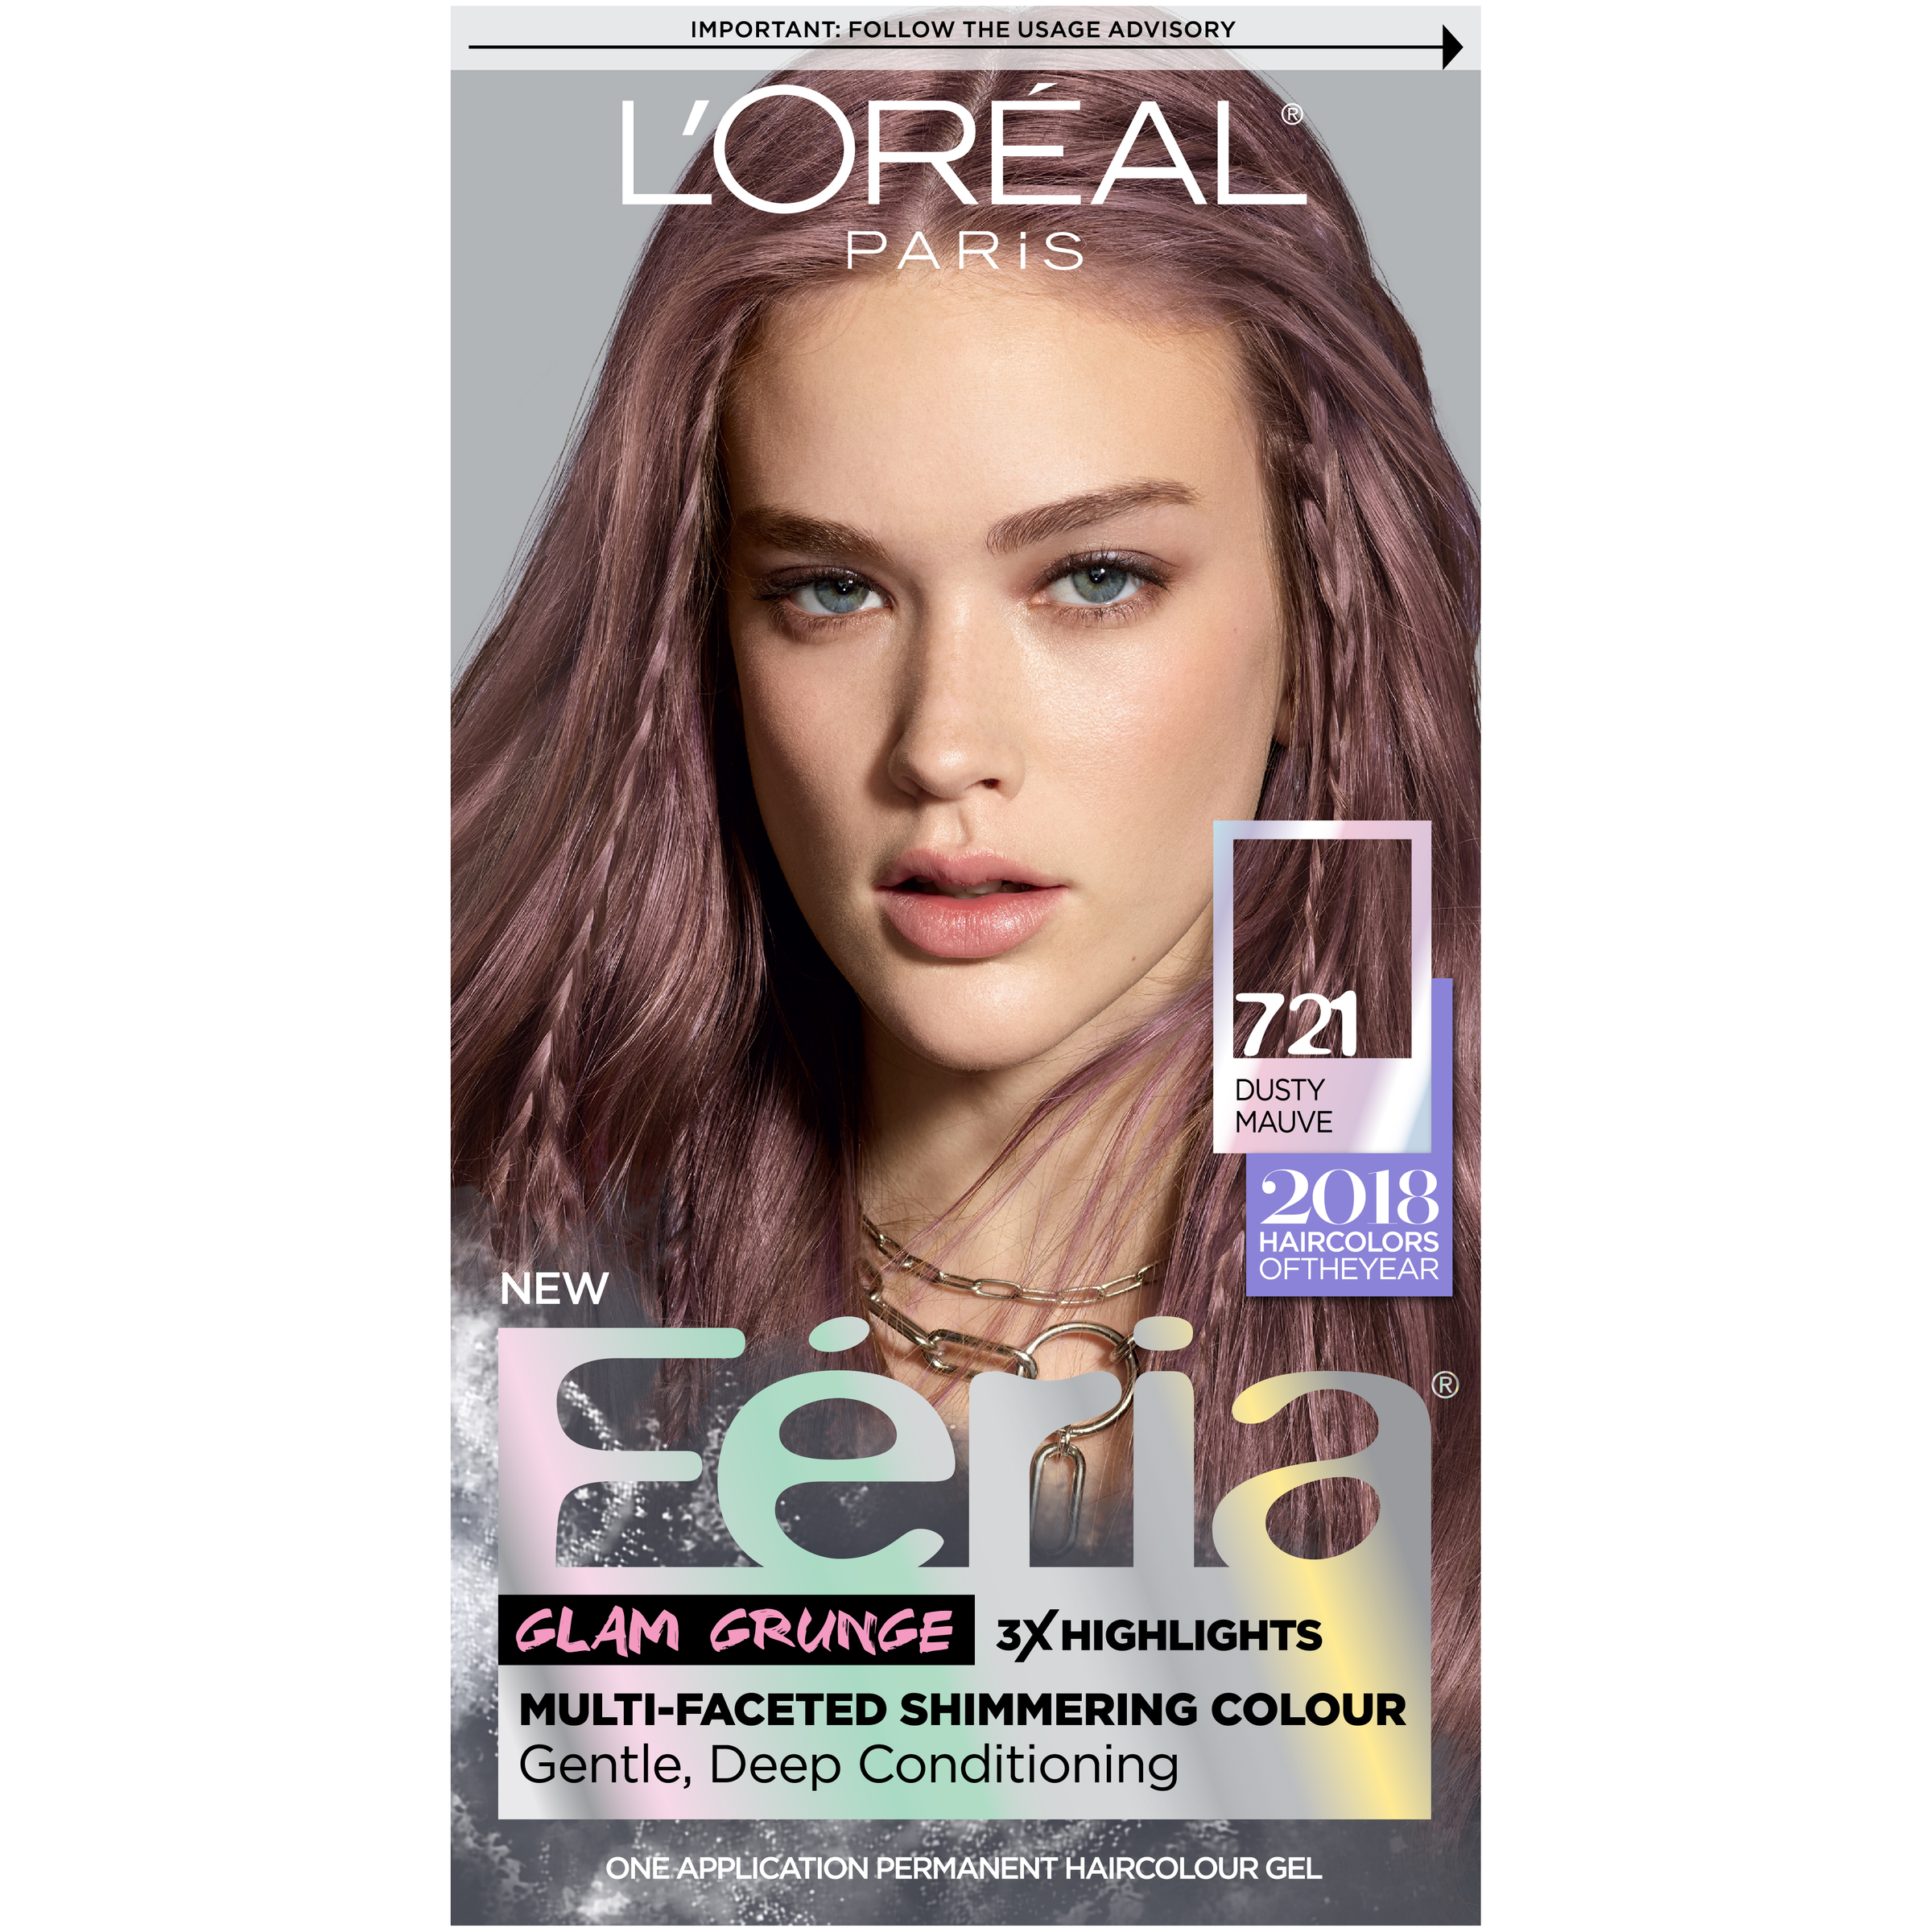 Loral Paris Feria Permanent Hair Color 721 Dusty Mauve Ebay